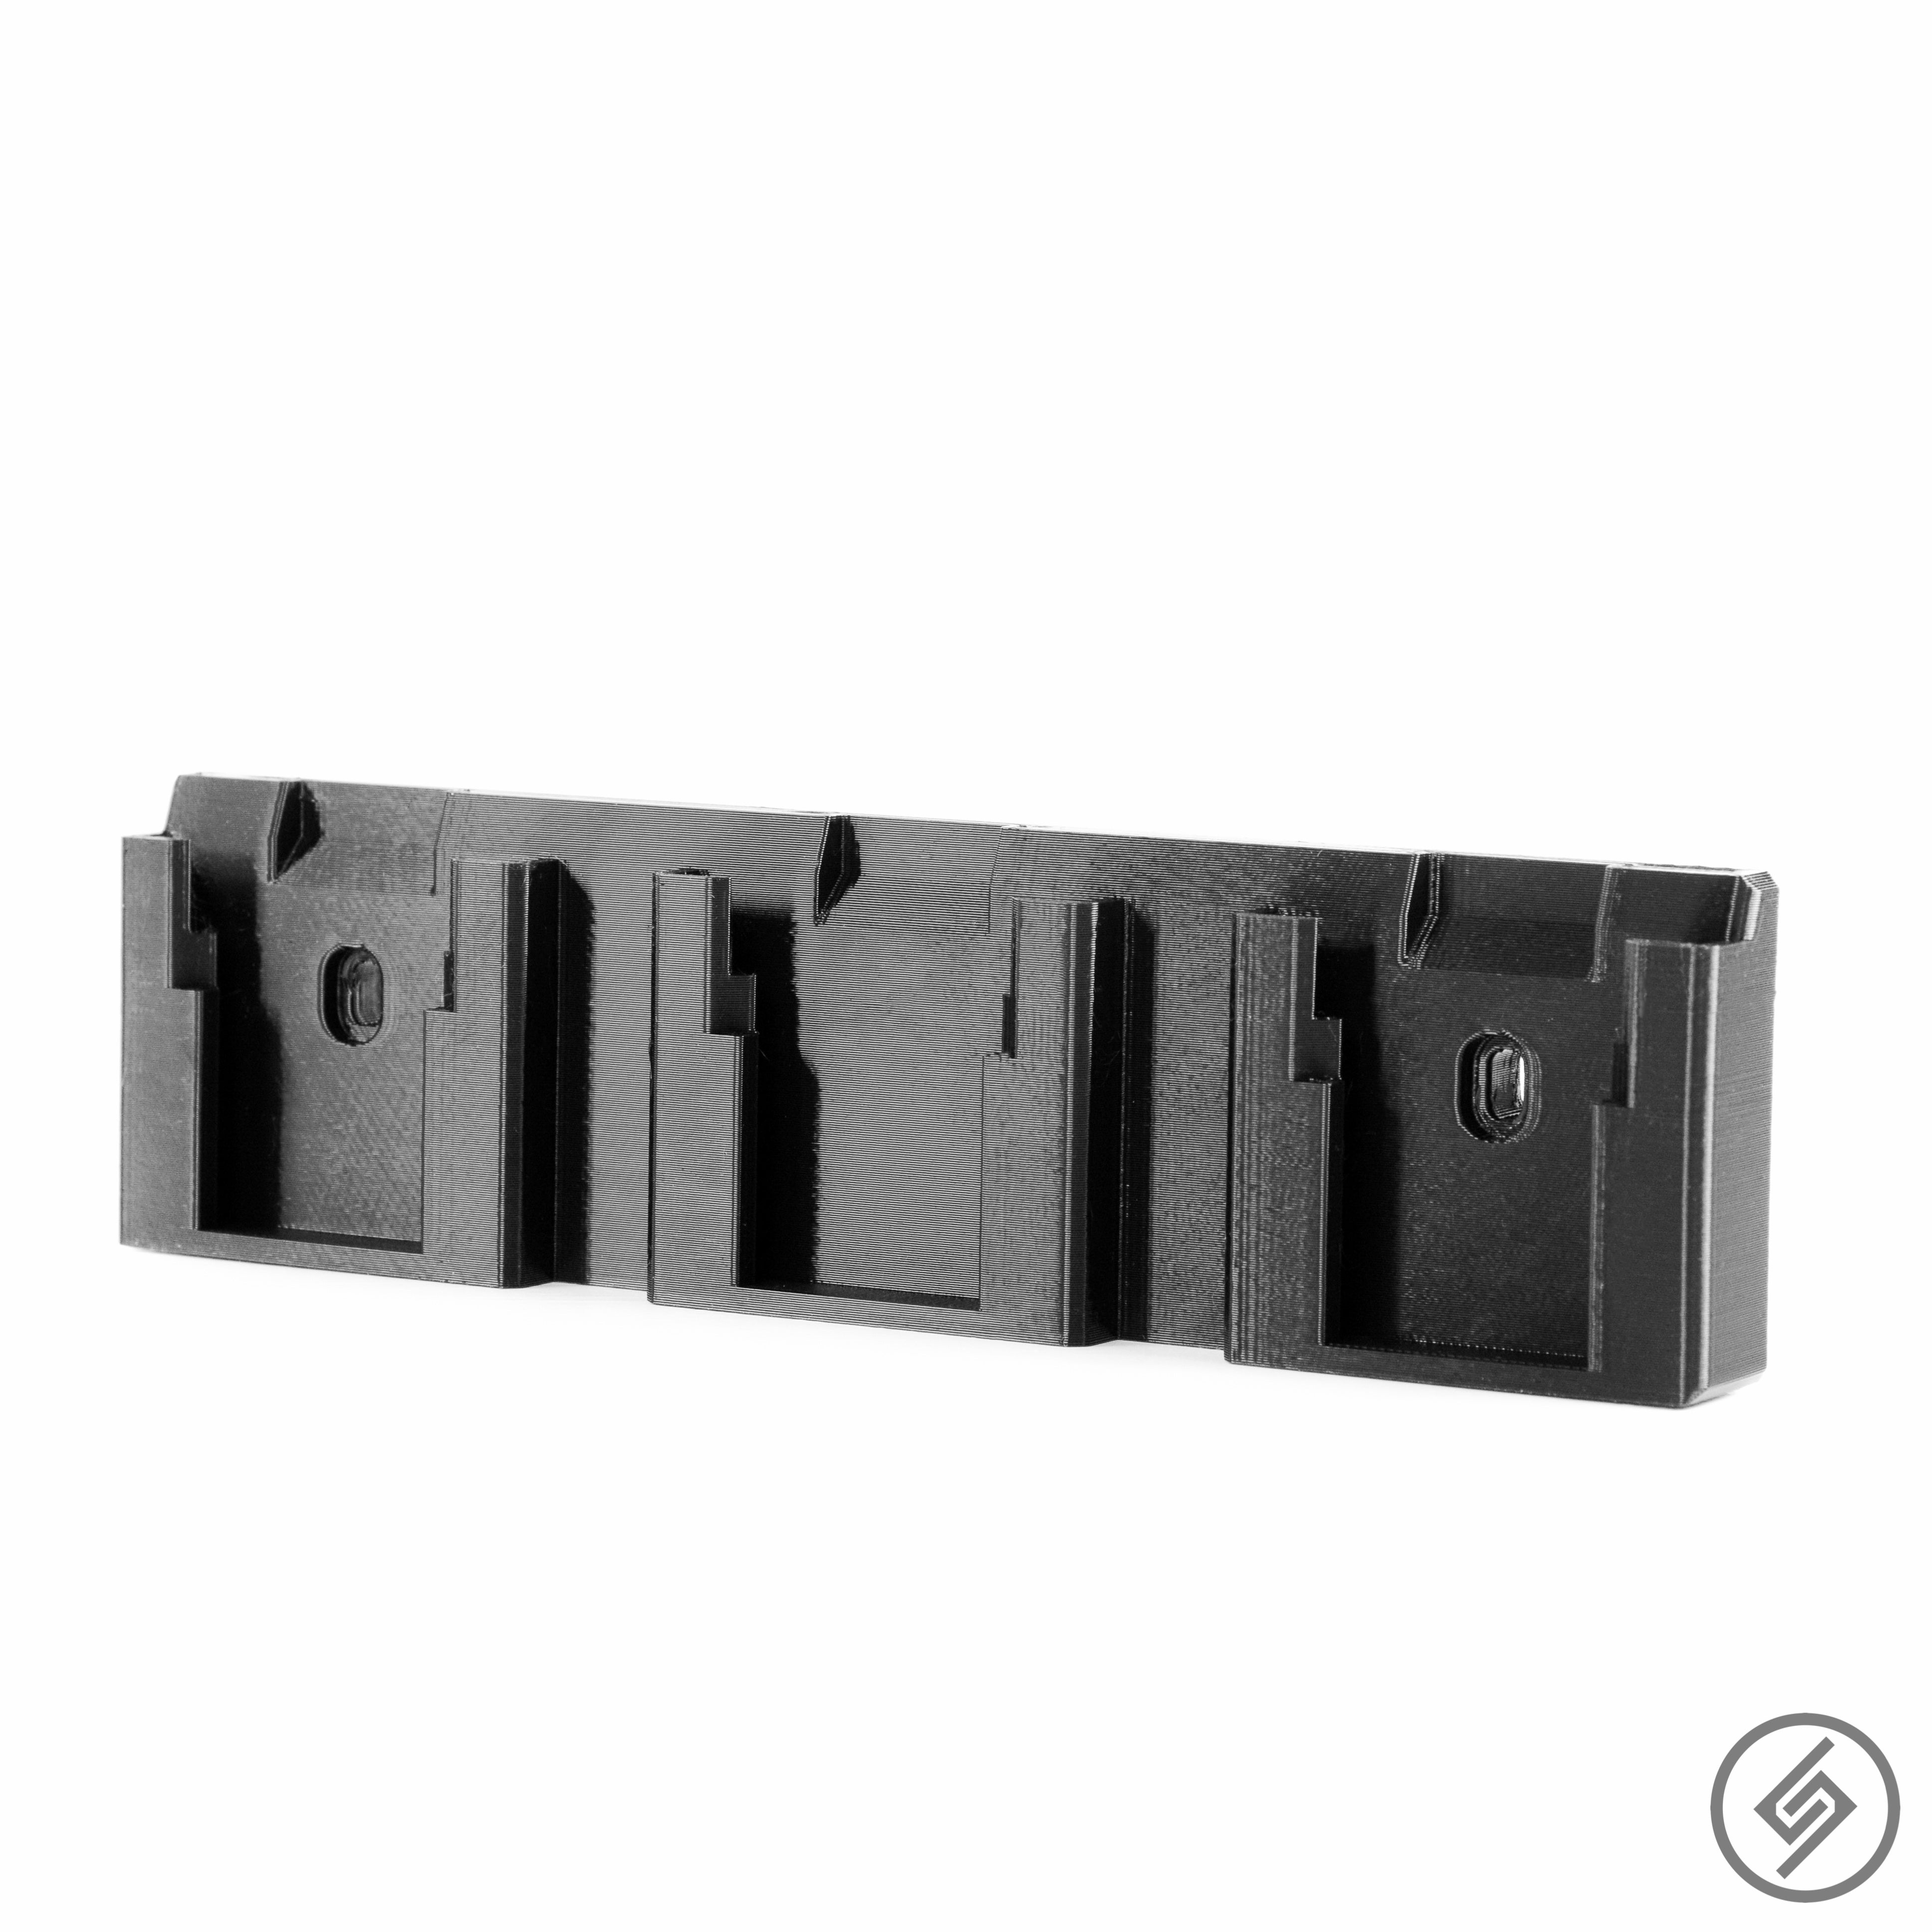 Wall Mount for DeWalt 20V Battery, Spartan Mounts, Display Photo